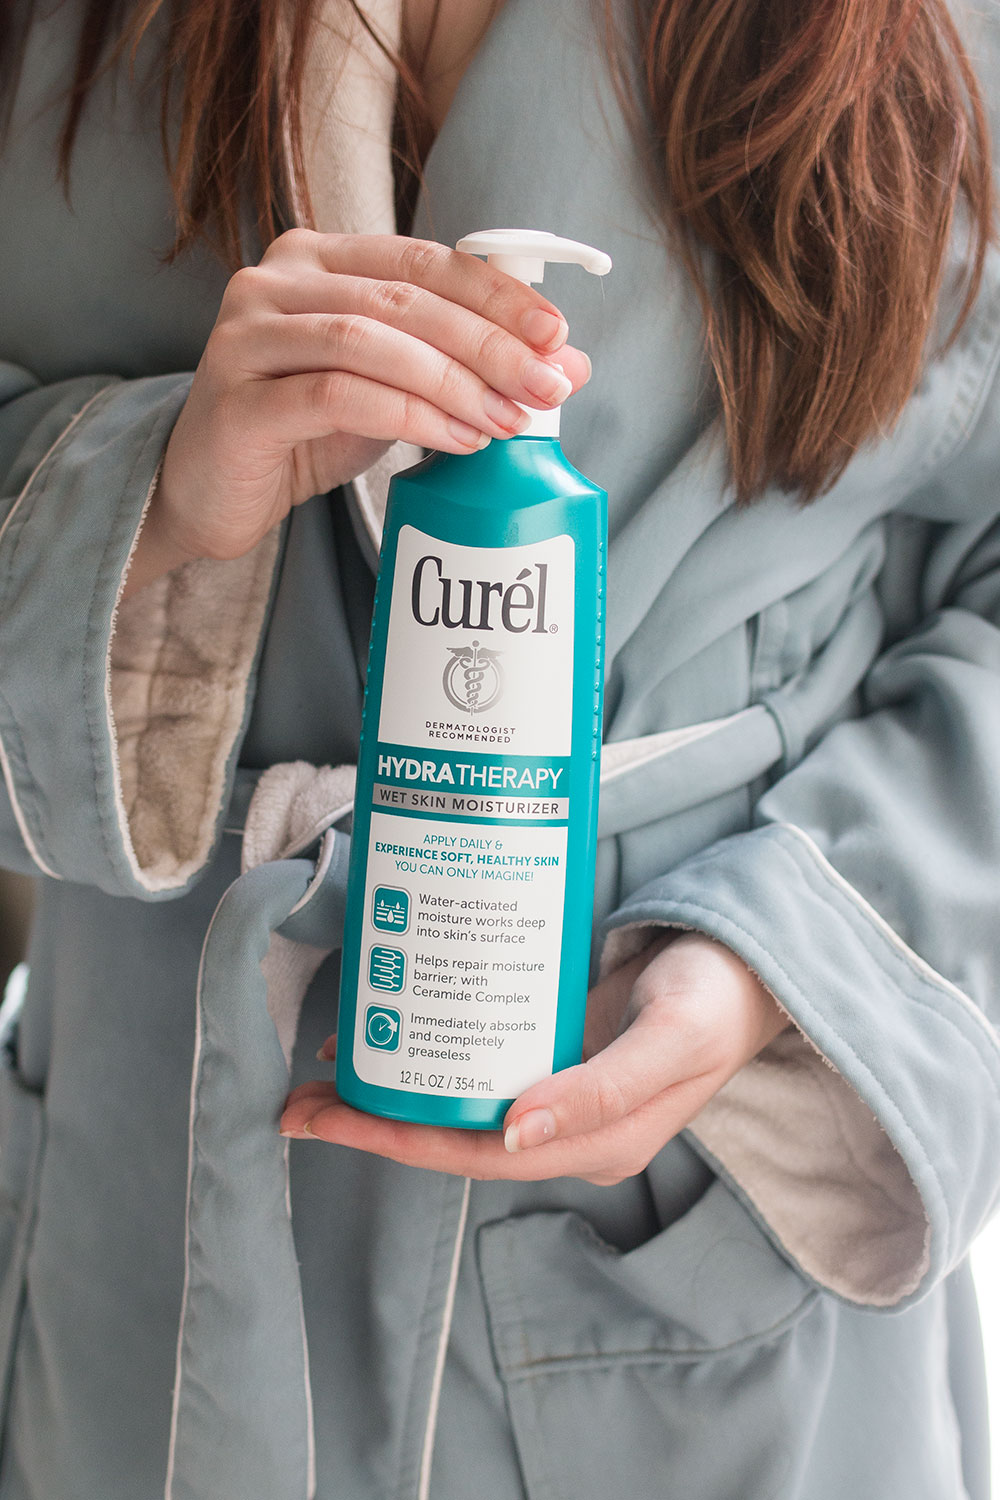 Curel Hydra Therapy Wet Skin Moisturizer Review for Dry Itchy Skin // Hello Rigby Seattle Beauty Blog